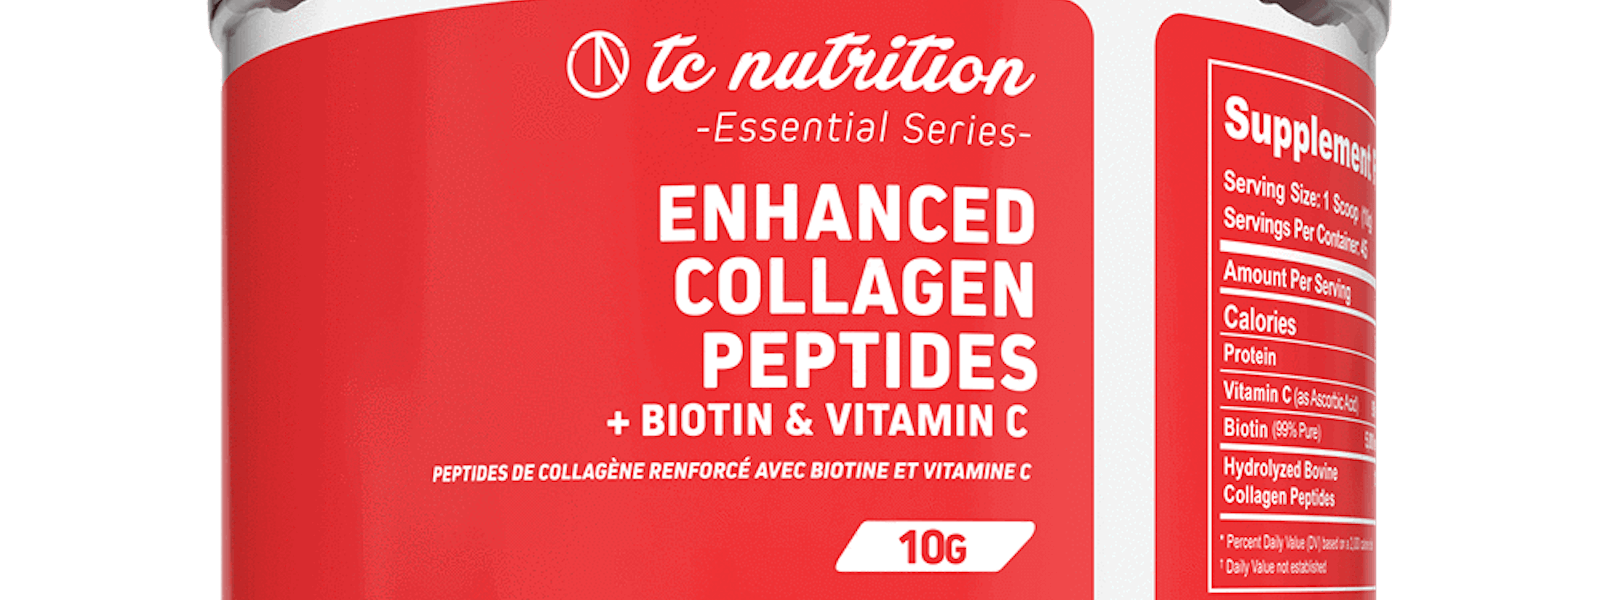 Now Available TC Nutrition Enhanced Collagen Peptides Supplements Canada